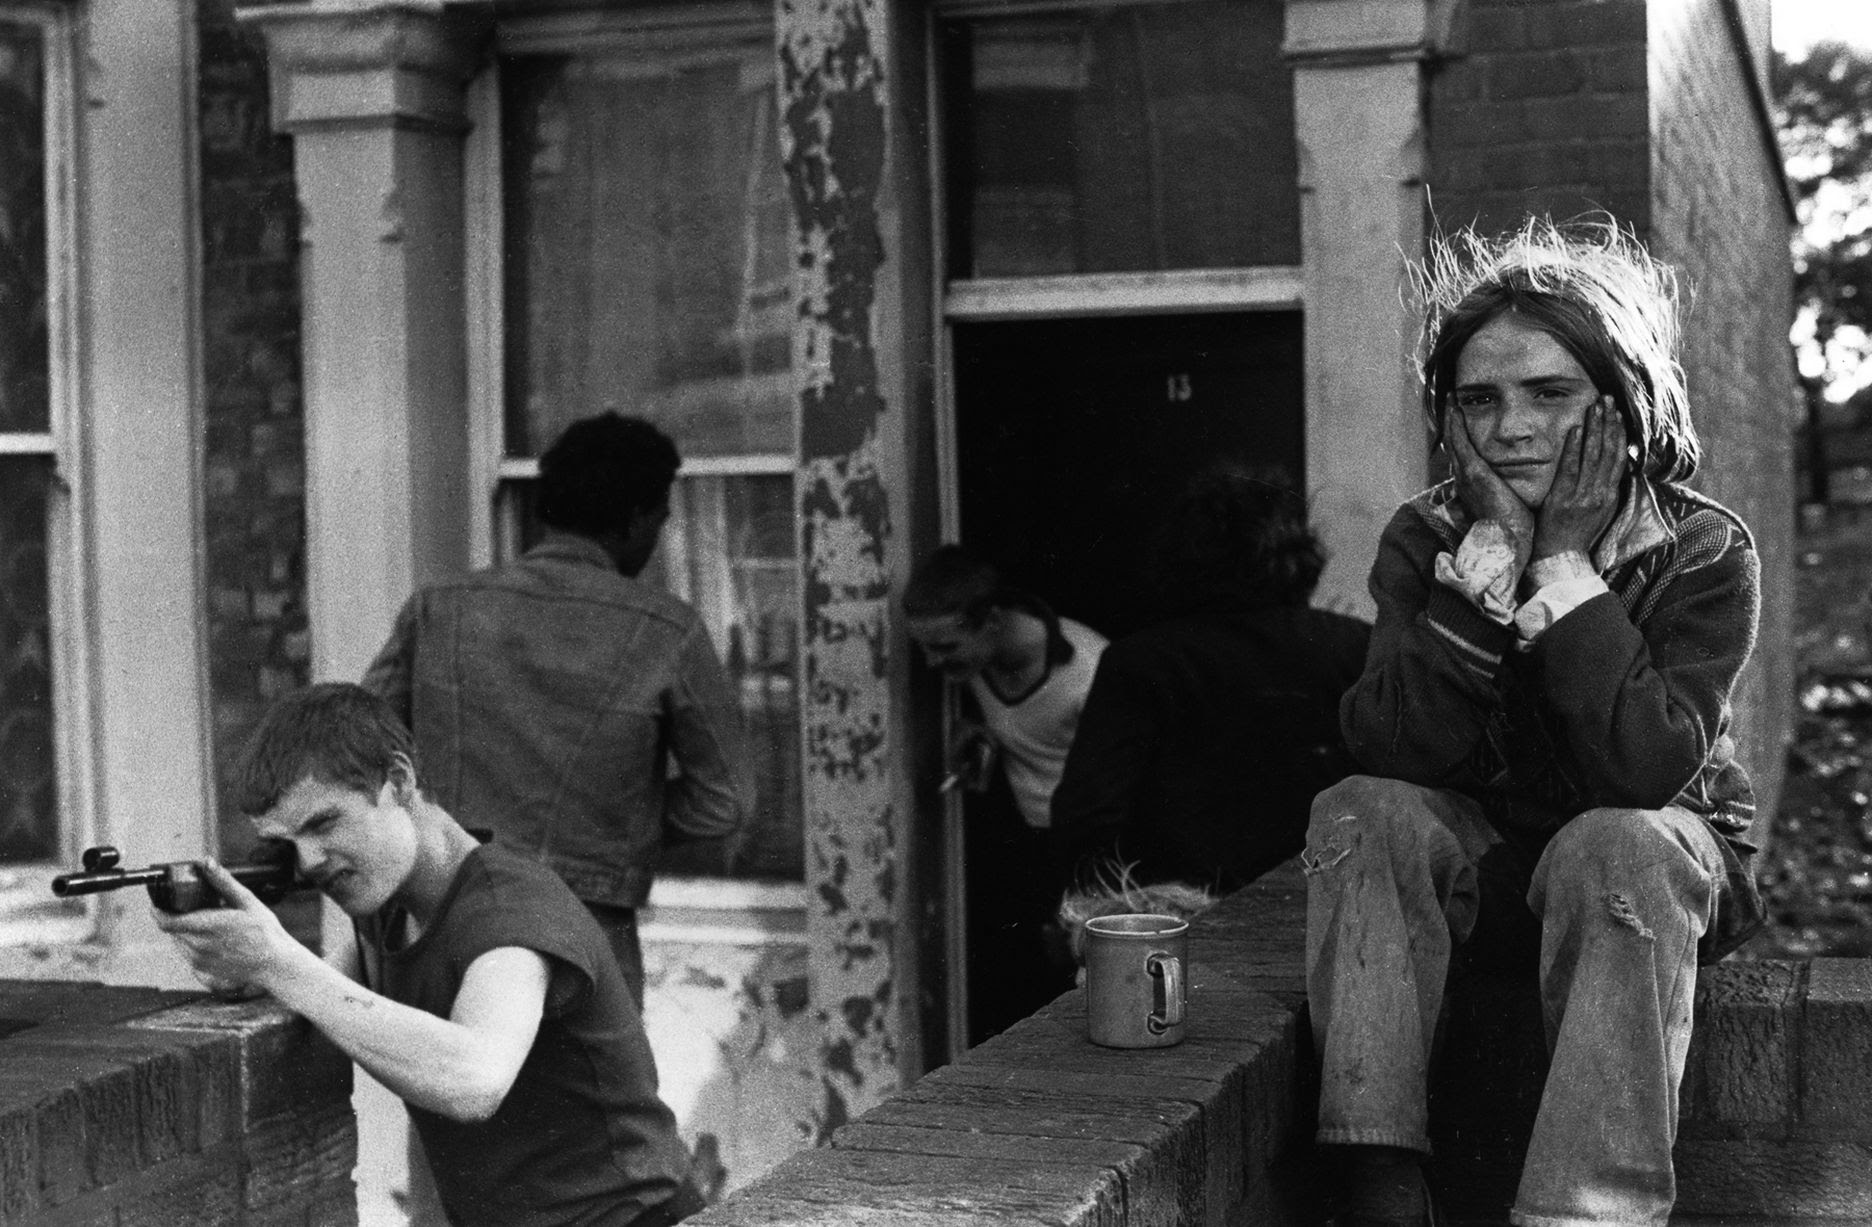 Youth unemployment, Elswick, 1981, by Tish Murtha, from the exhibition For Ever Amber at Newcastle's Laing Art Gallery